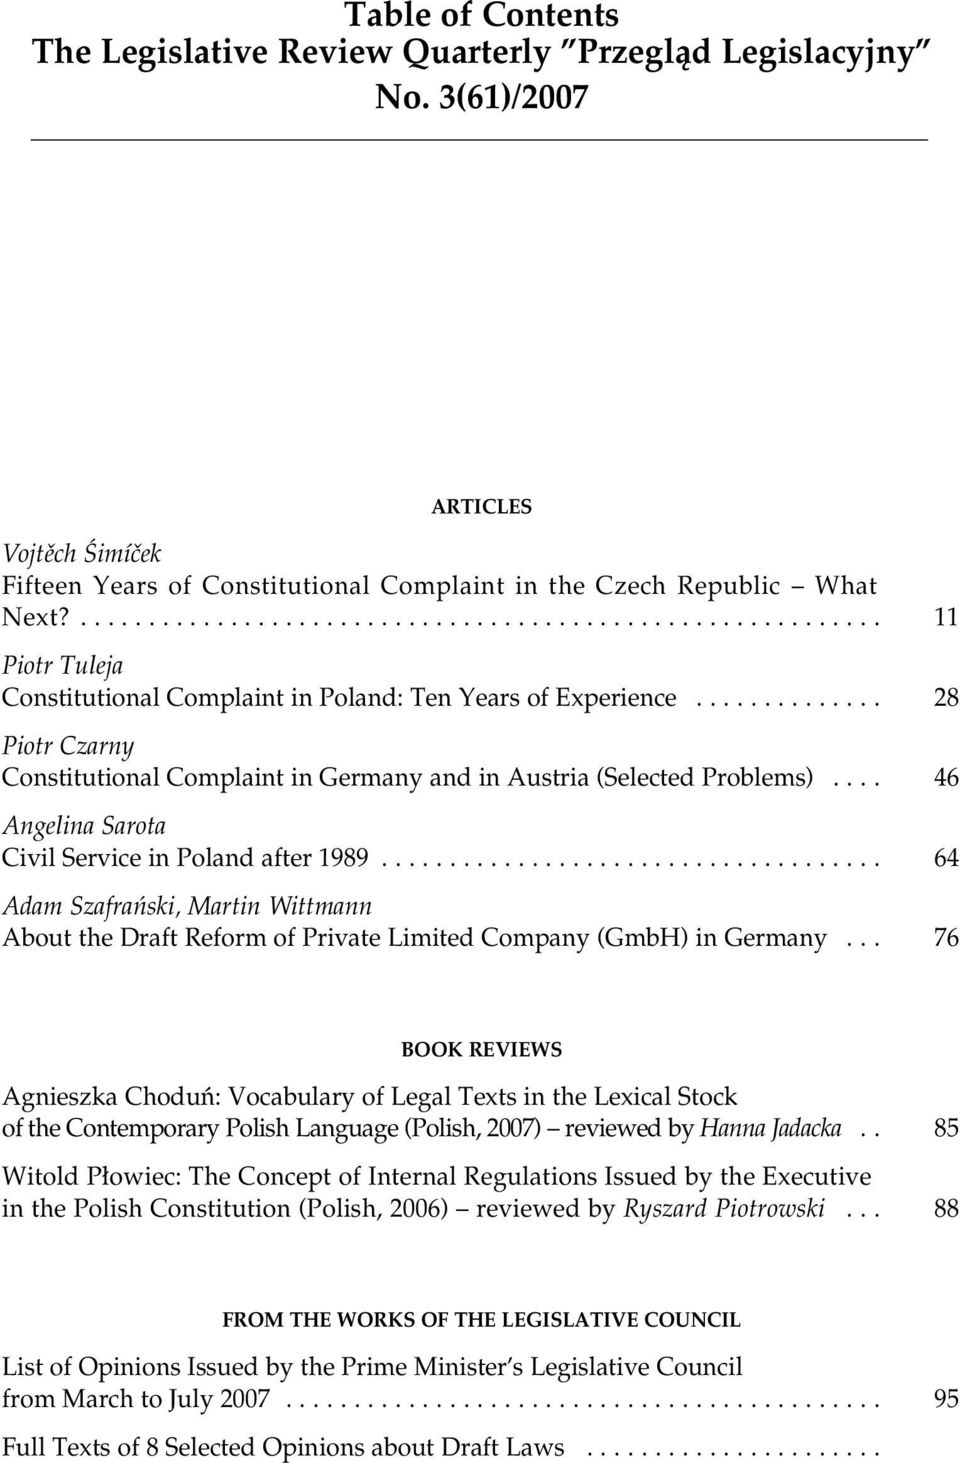 ............. 28 Piotr Czarny Constitutional Complaint in Germany and in Austria (Selected Problems).... 46 Angelina Sarota Civil Service in Poland after 1989.